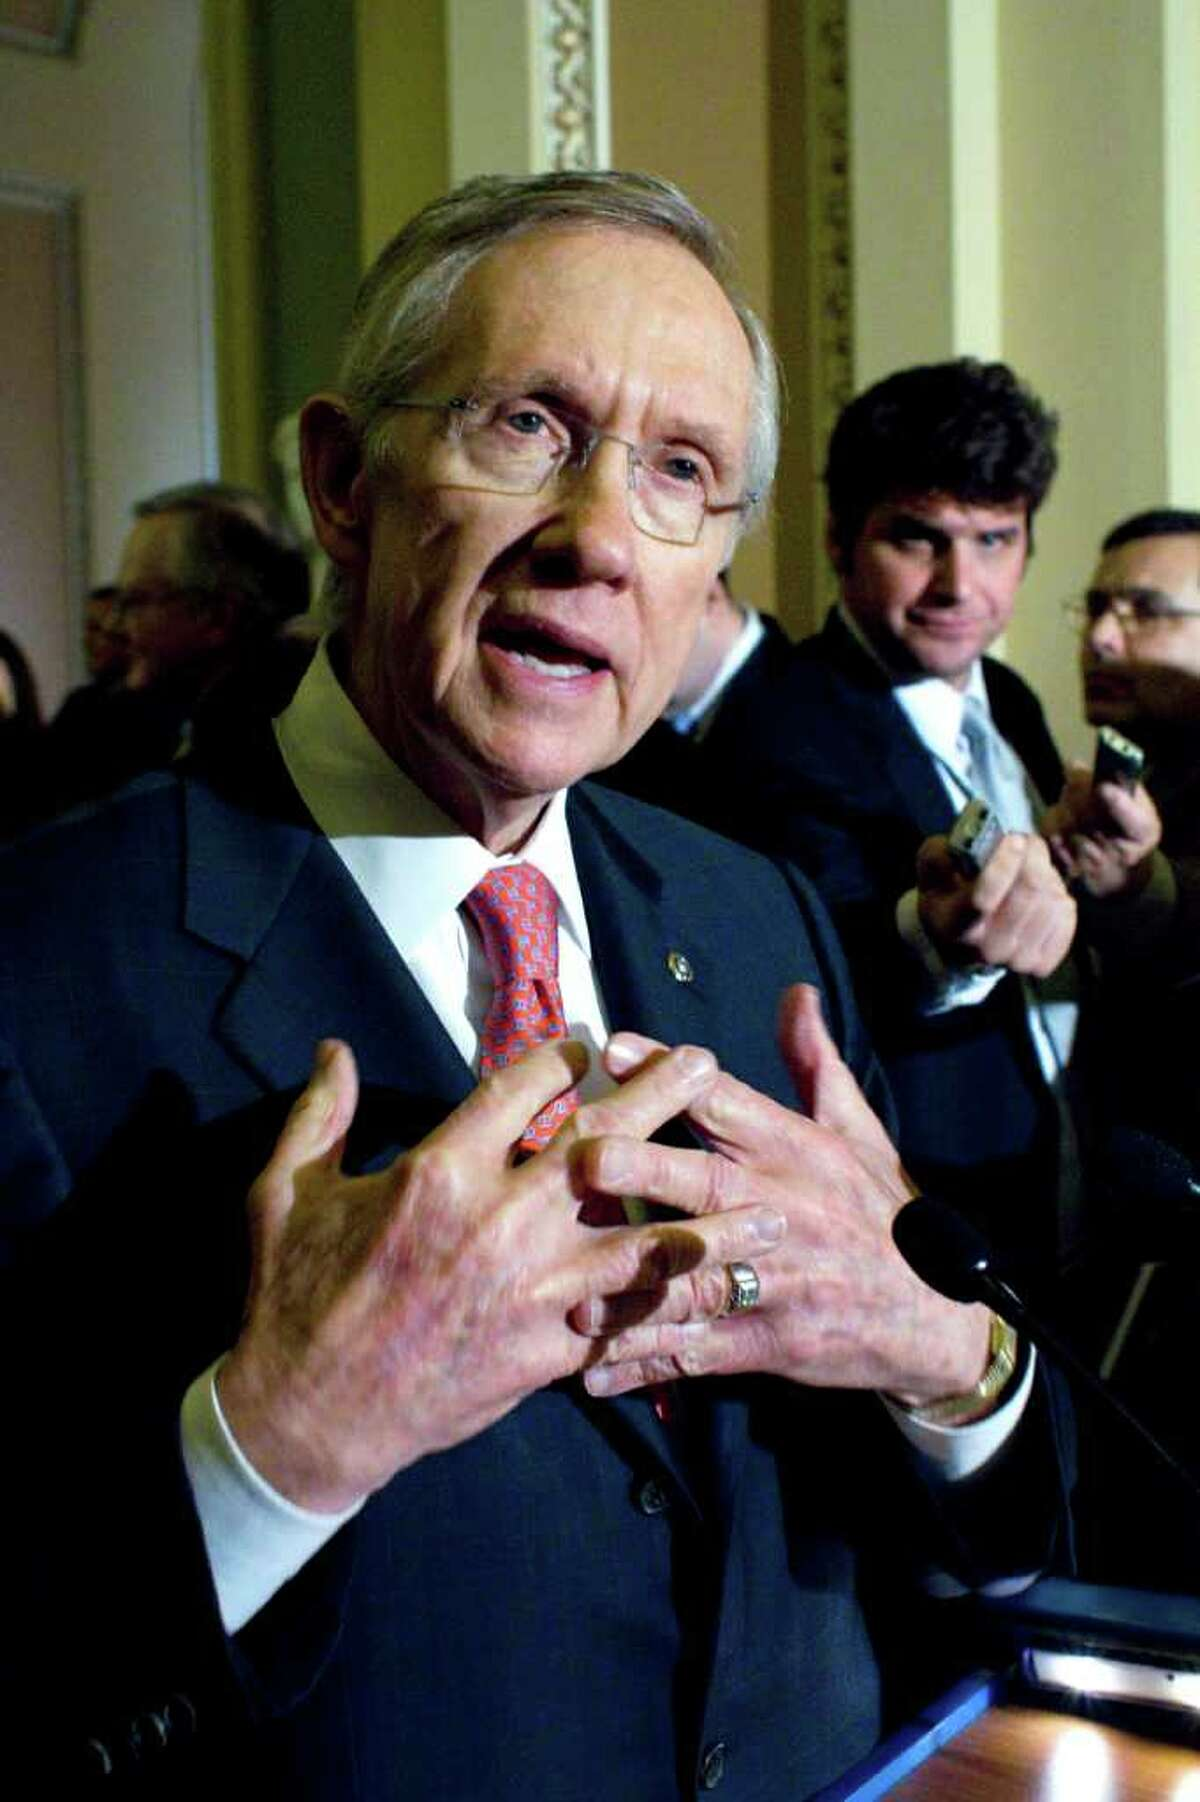 Senate Majority Leader Harry Reid, D-Nev., speaks to reporters after the weekly caucus luncheons on Capitol Hill in Washington, Jan. 25, 2011. (AP Photo/Harry Hamburg)